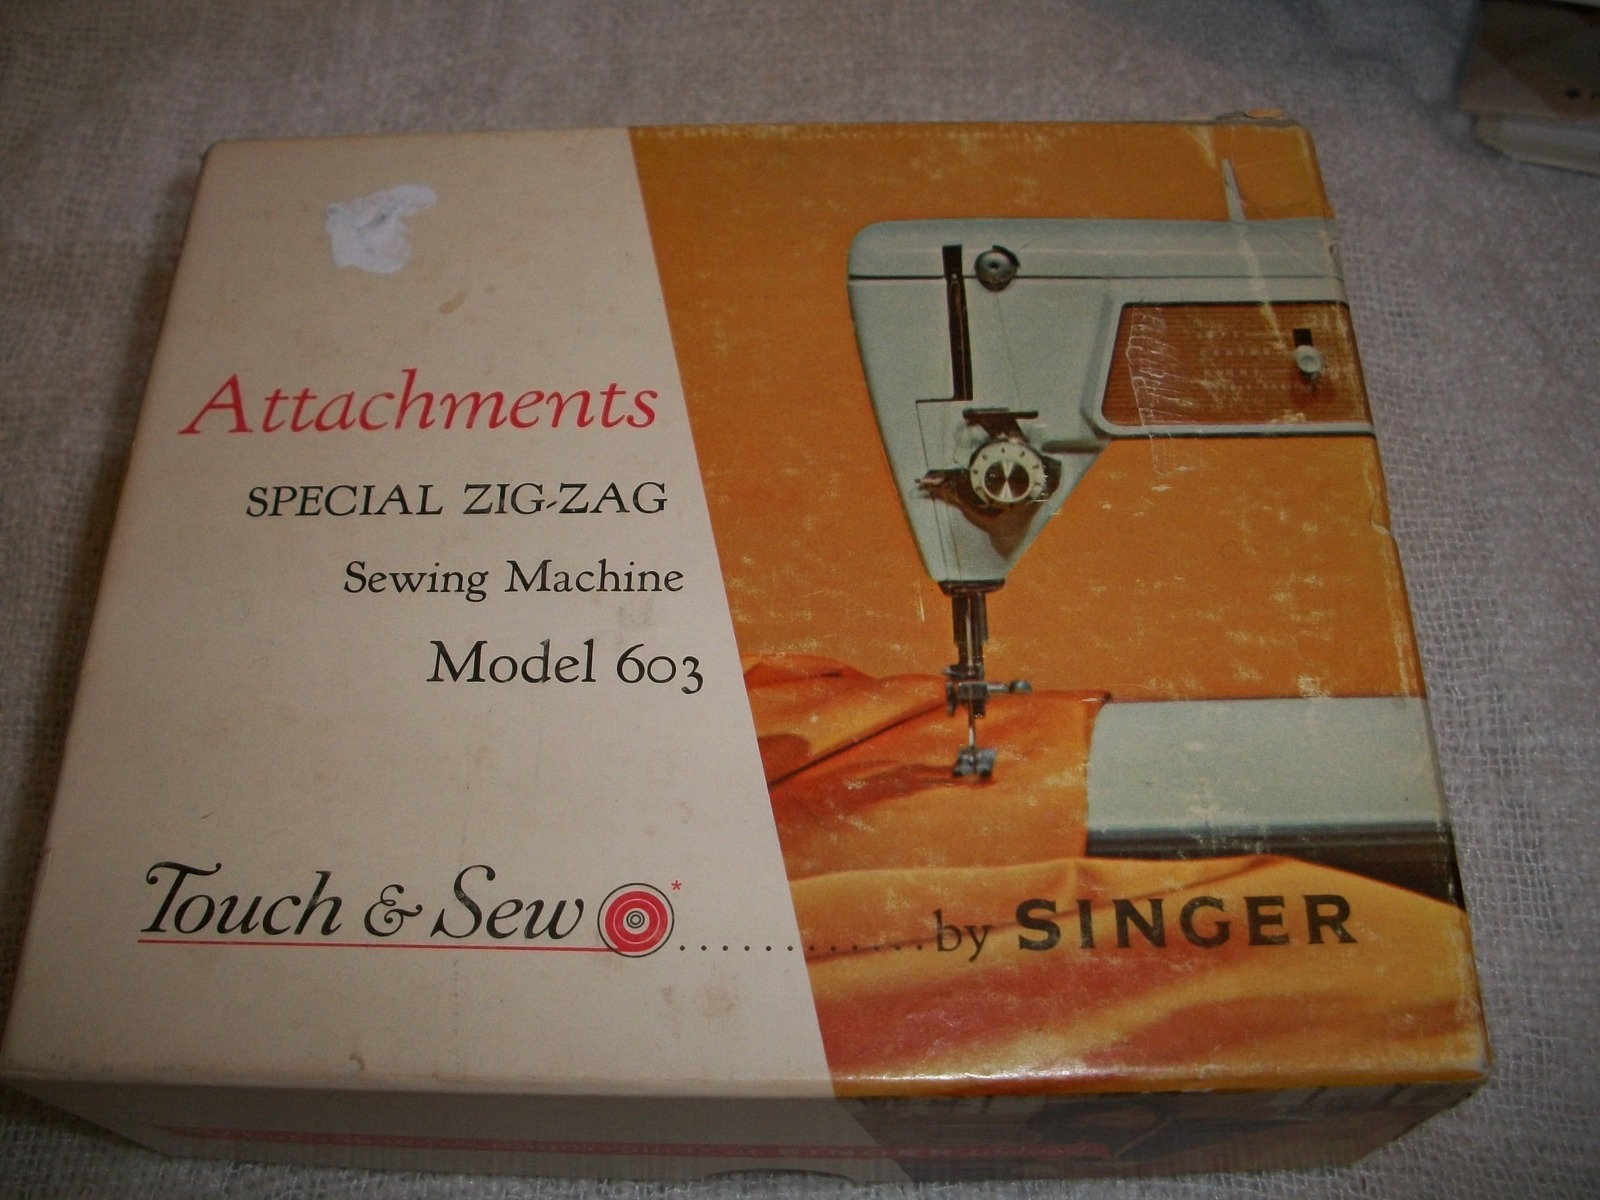 Singer Touch & Sew Sewing Machine Attachments  - $26.39 CAD